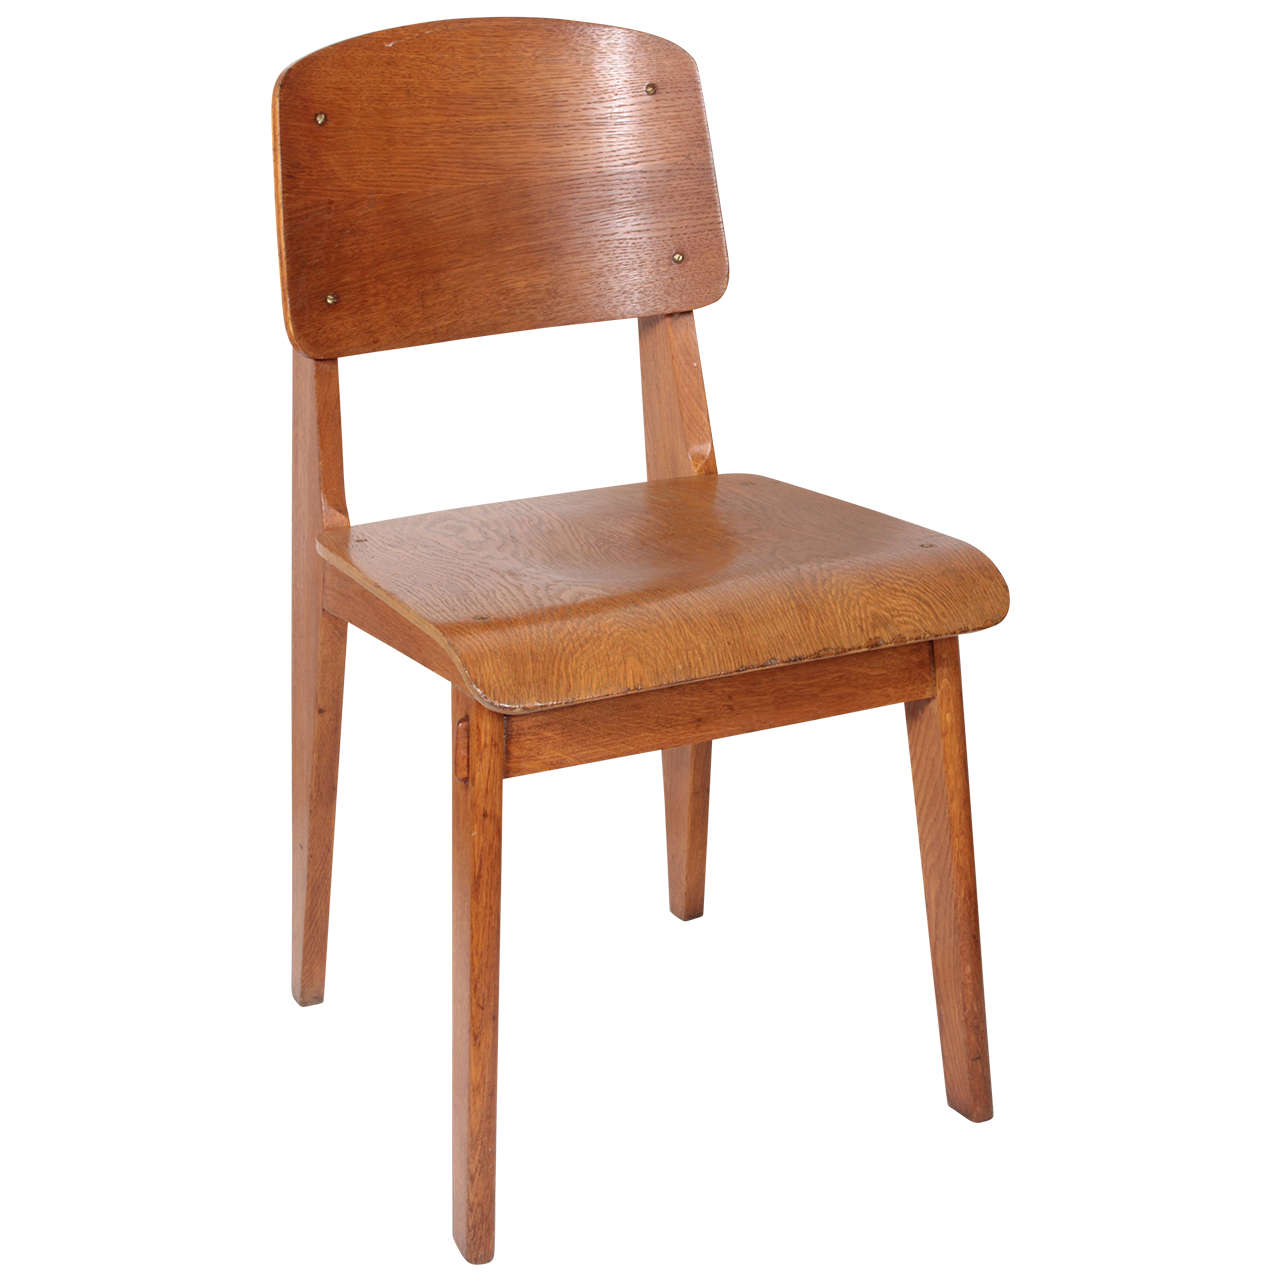 prouve standard chair ikea markus review jean circa 1940 at 1stdibs